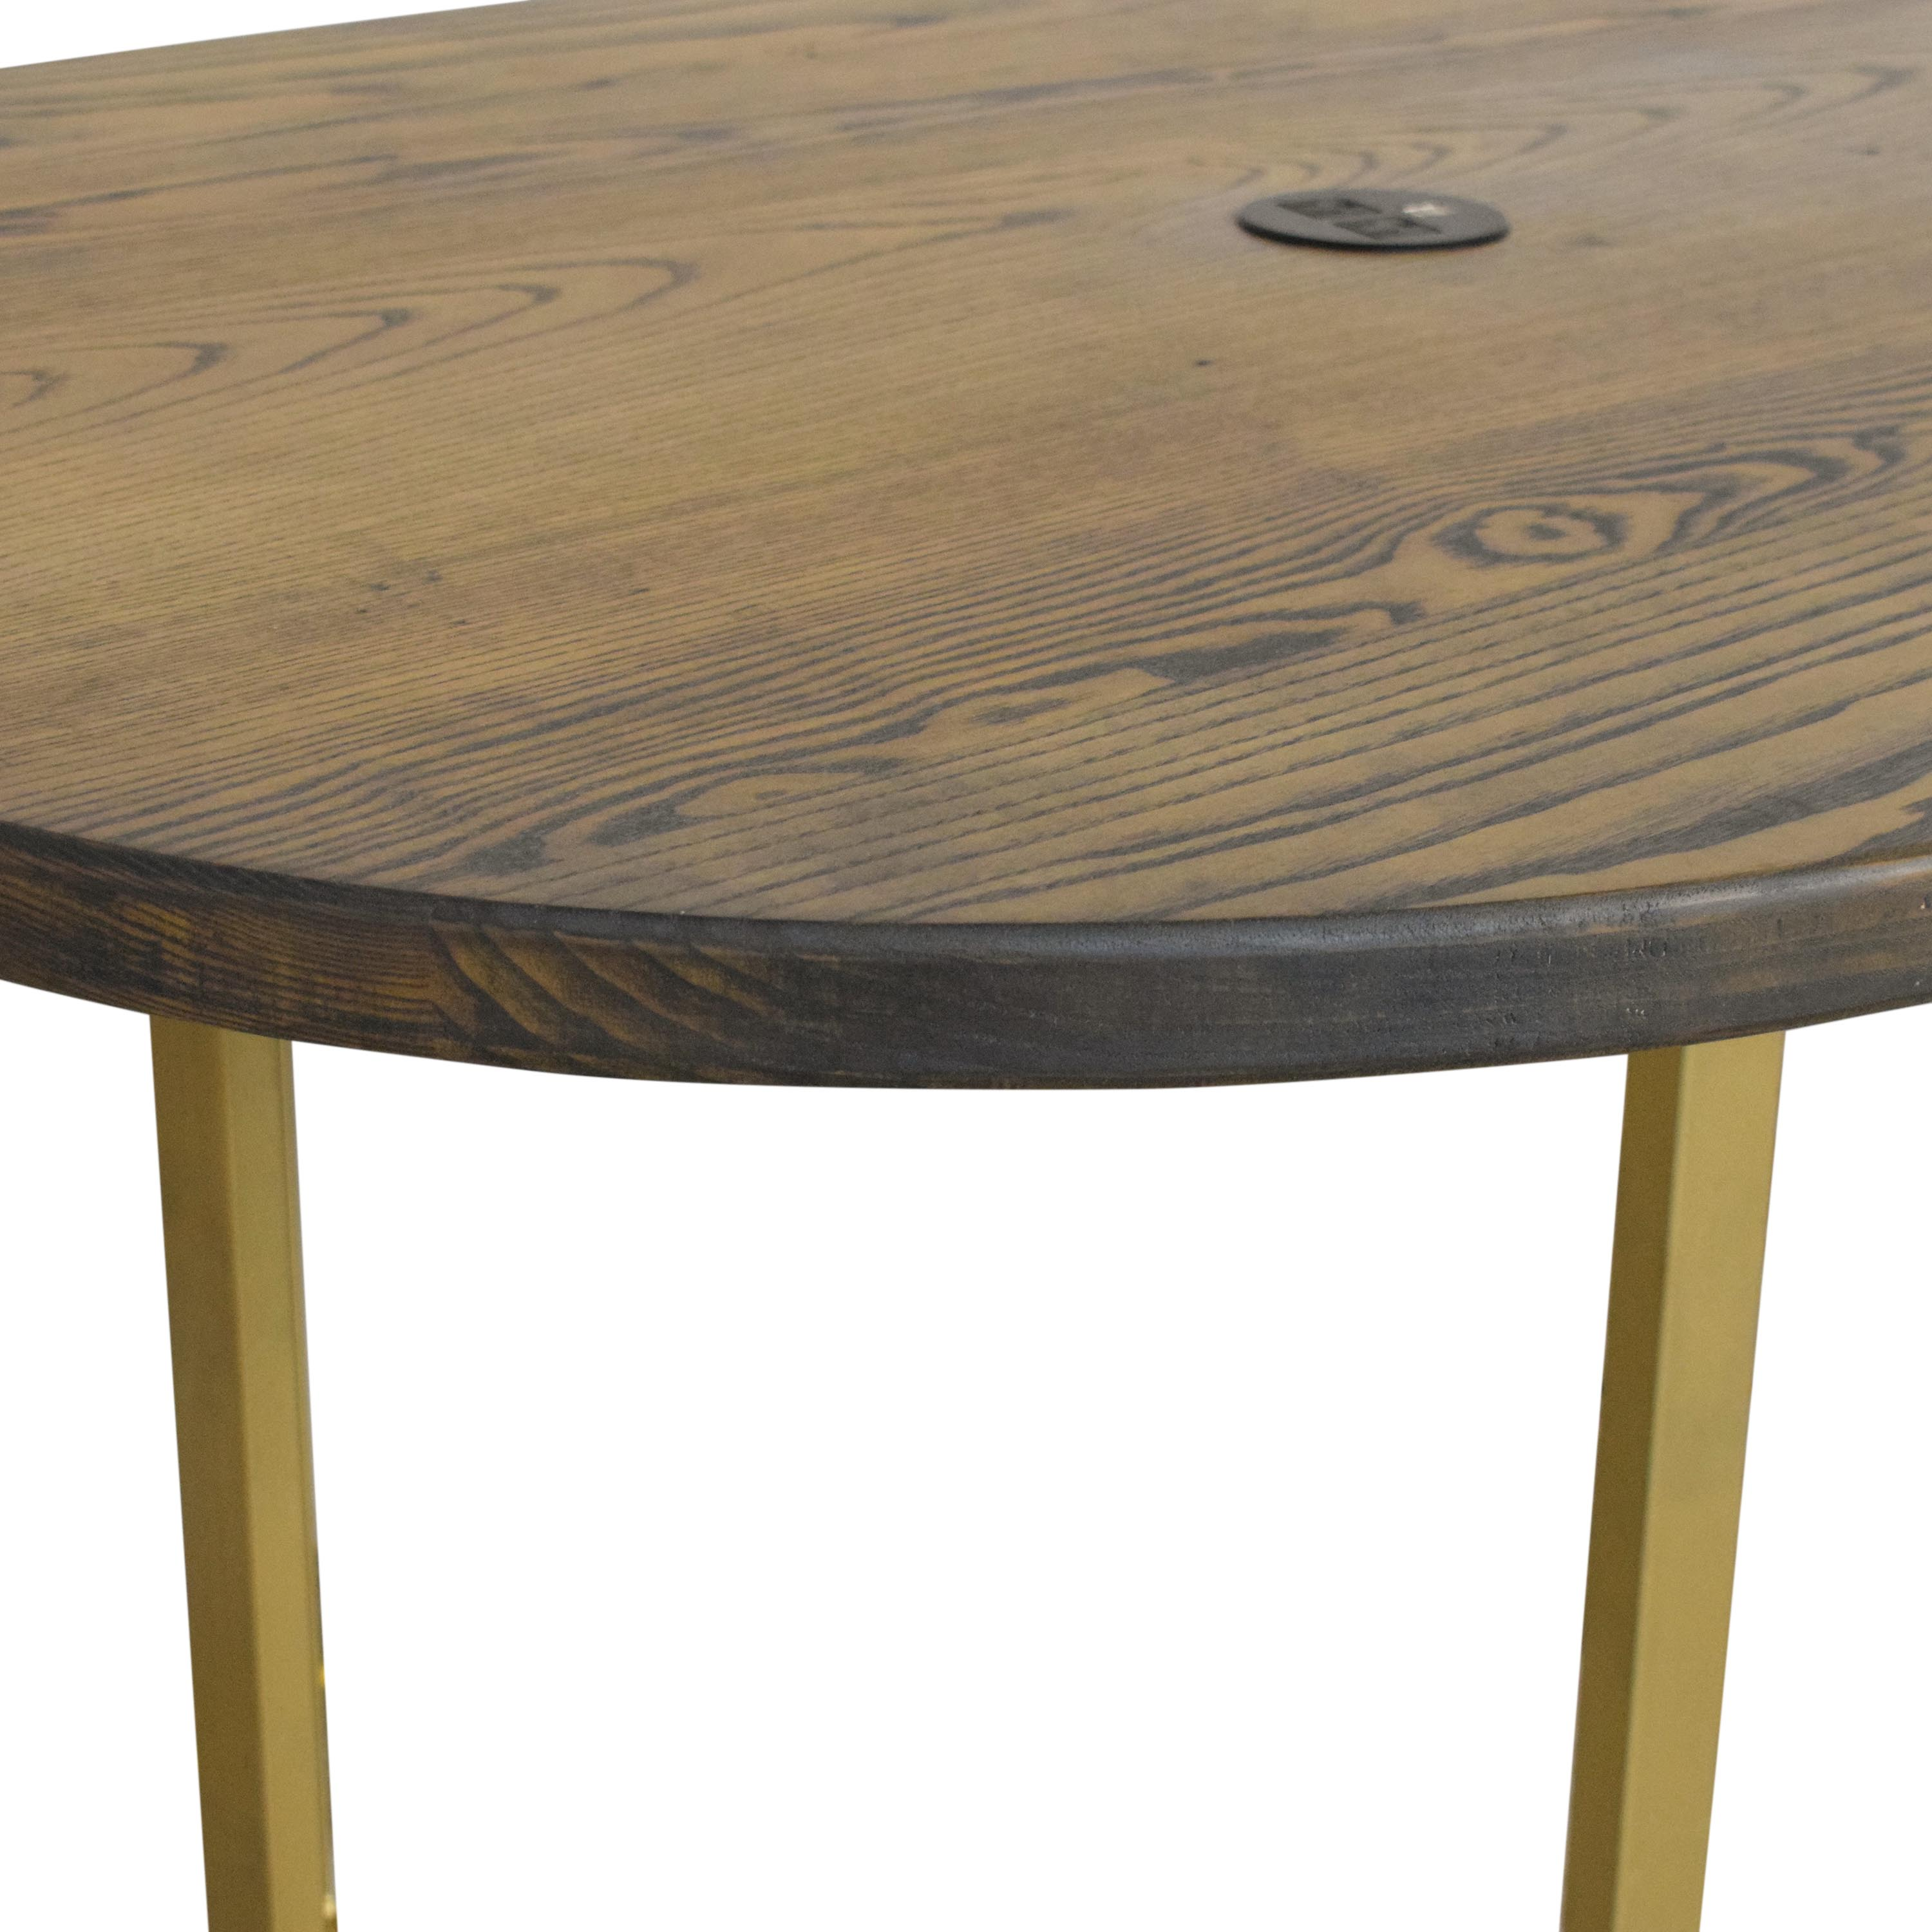 Utility Table with Electrical Plugs price